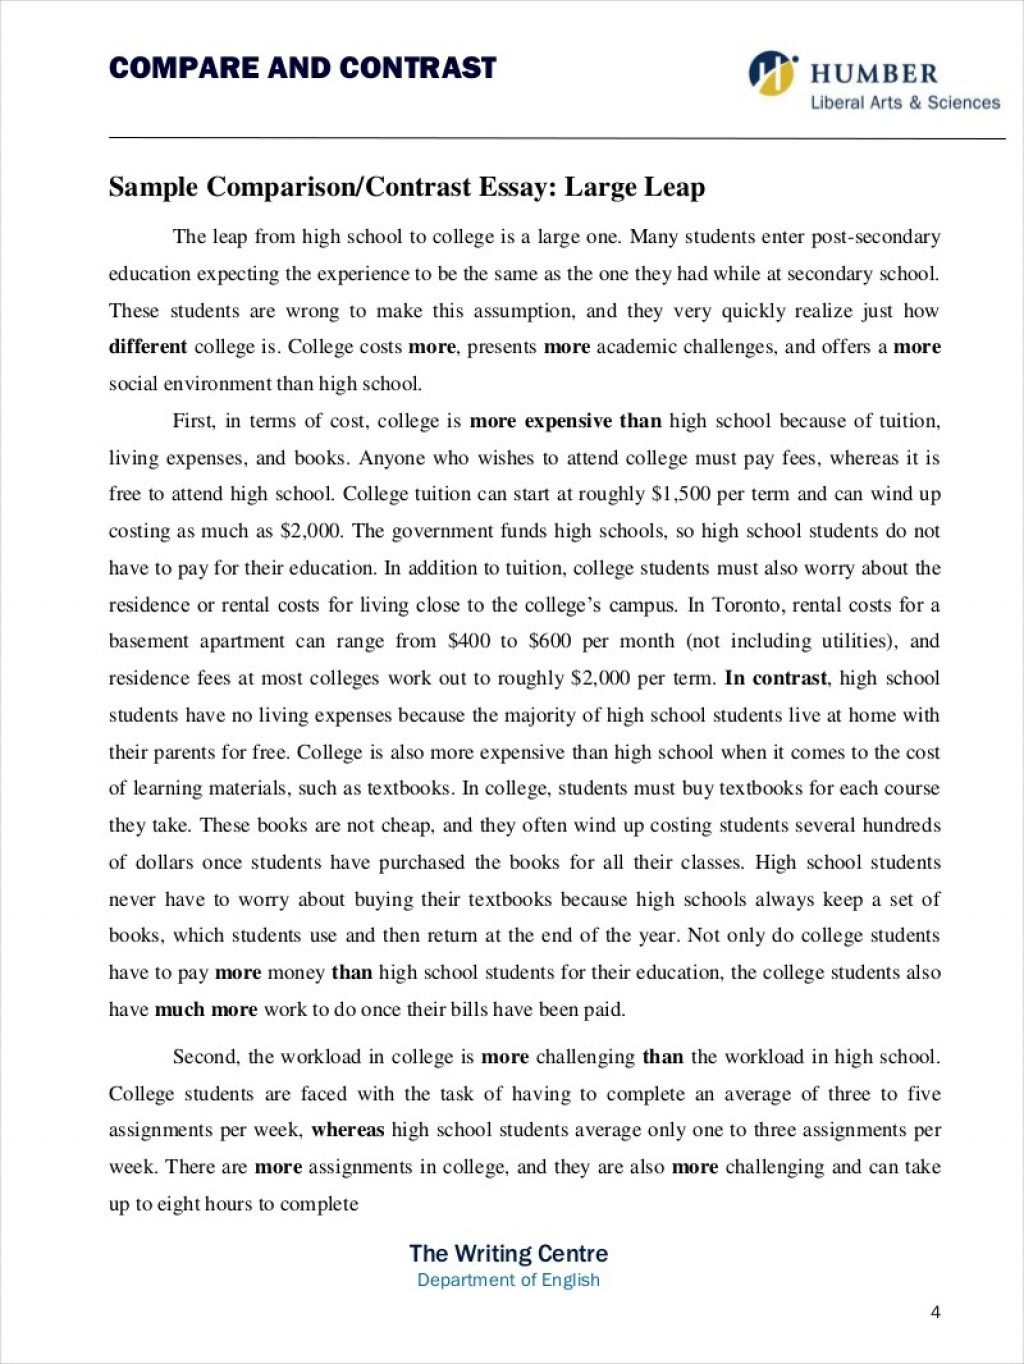 015 Comparing And Contrasting Essay Example Comparative Samples Free Pdf Format Unique Comparison Contrast Sample Compare Structure University Topics On Health Large